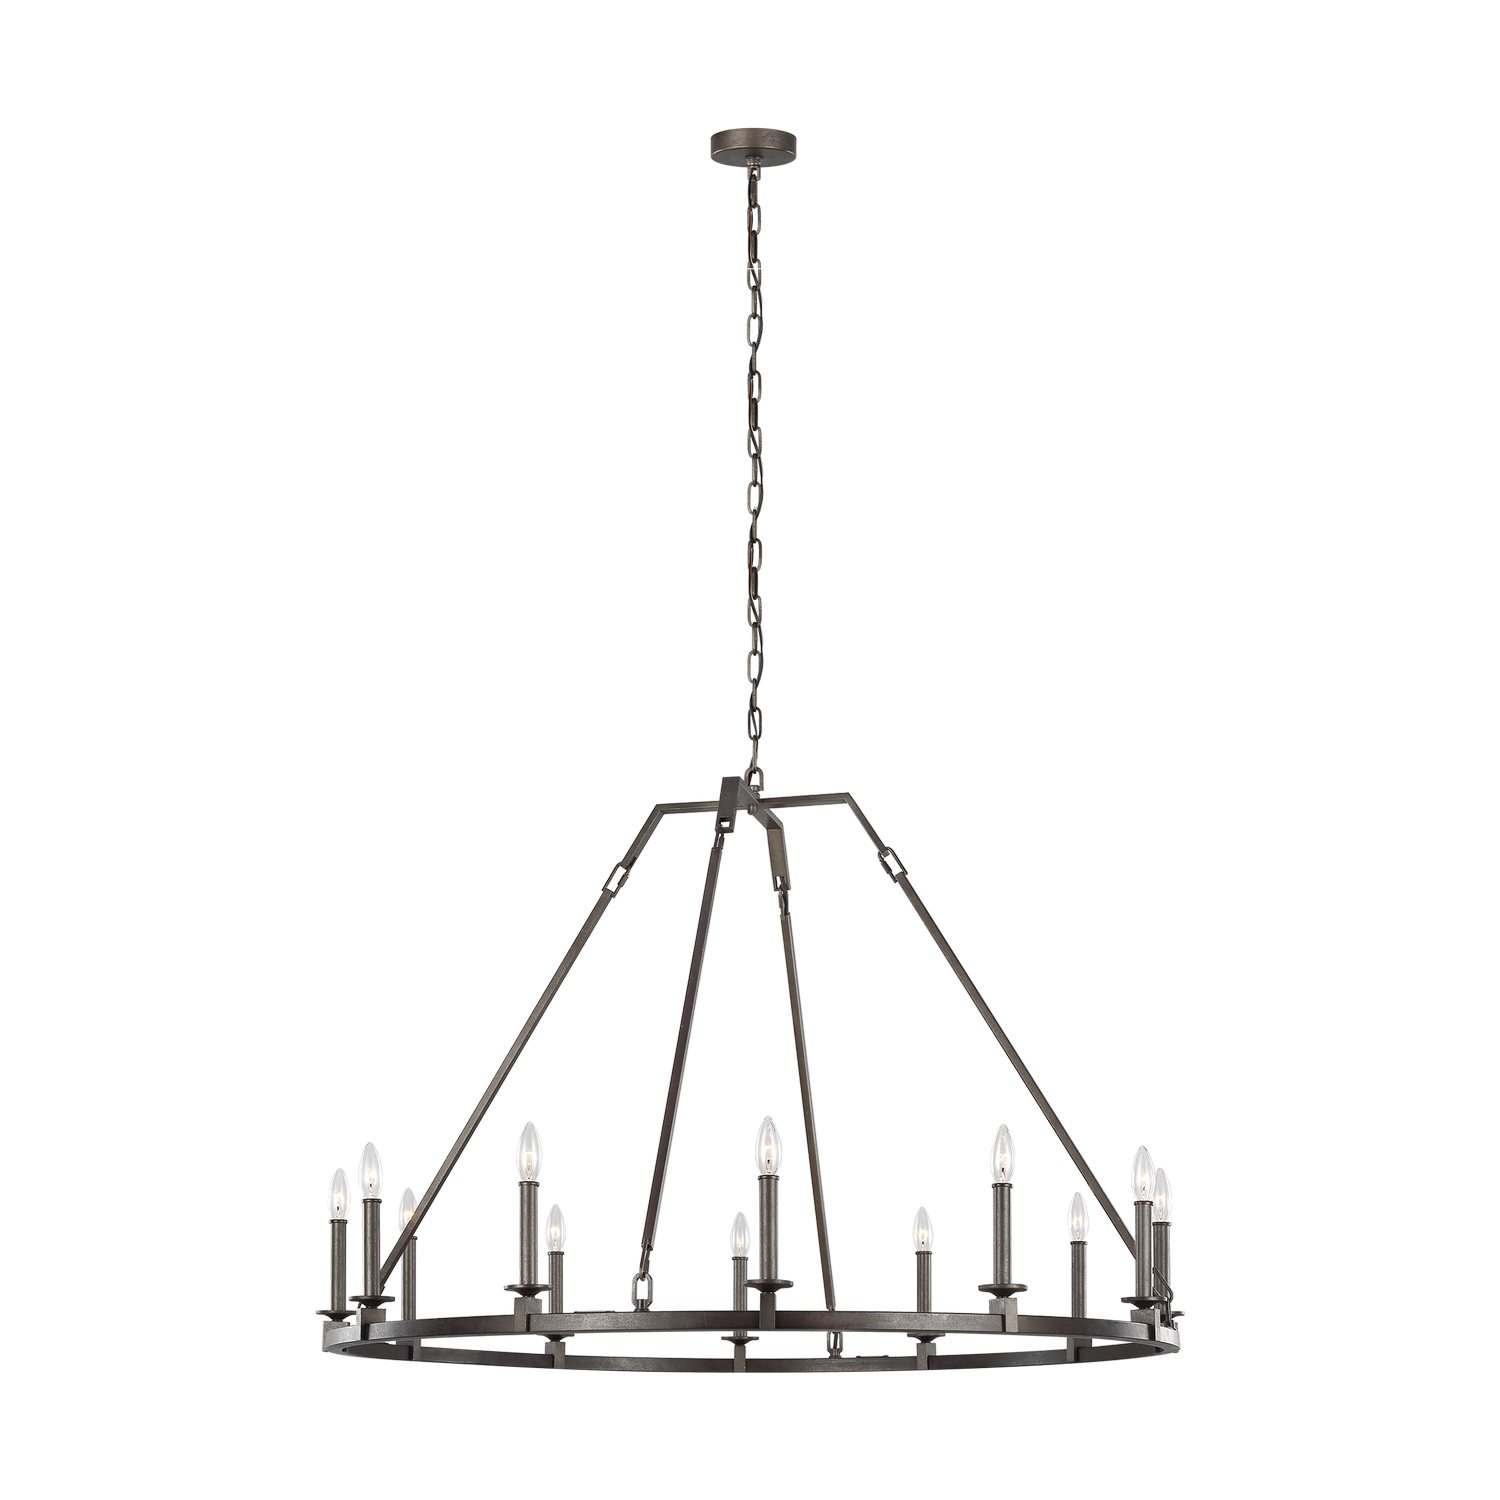 12 Light Chandelier from the Landen collection by Feiss F321612SMS